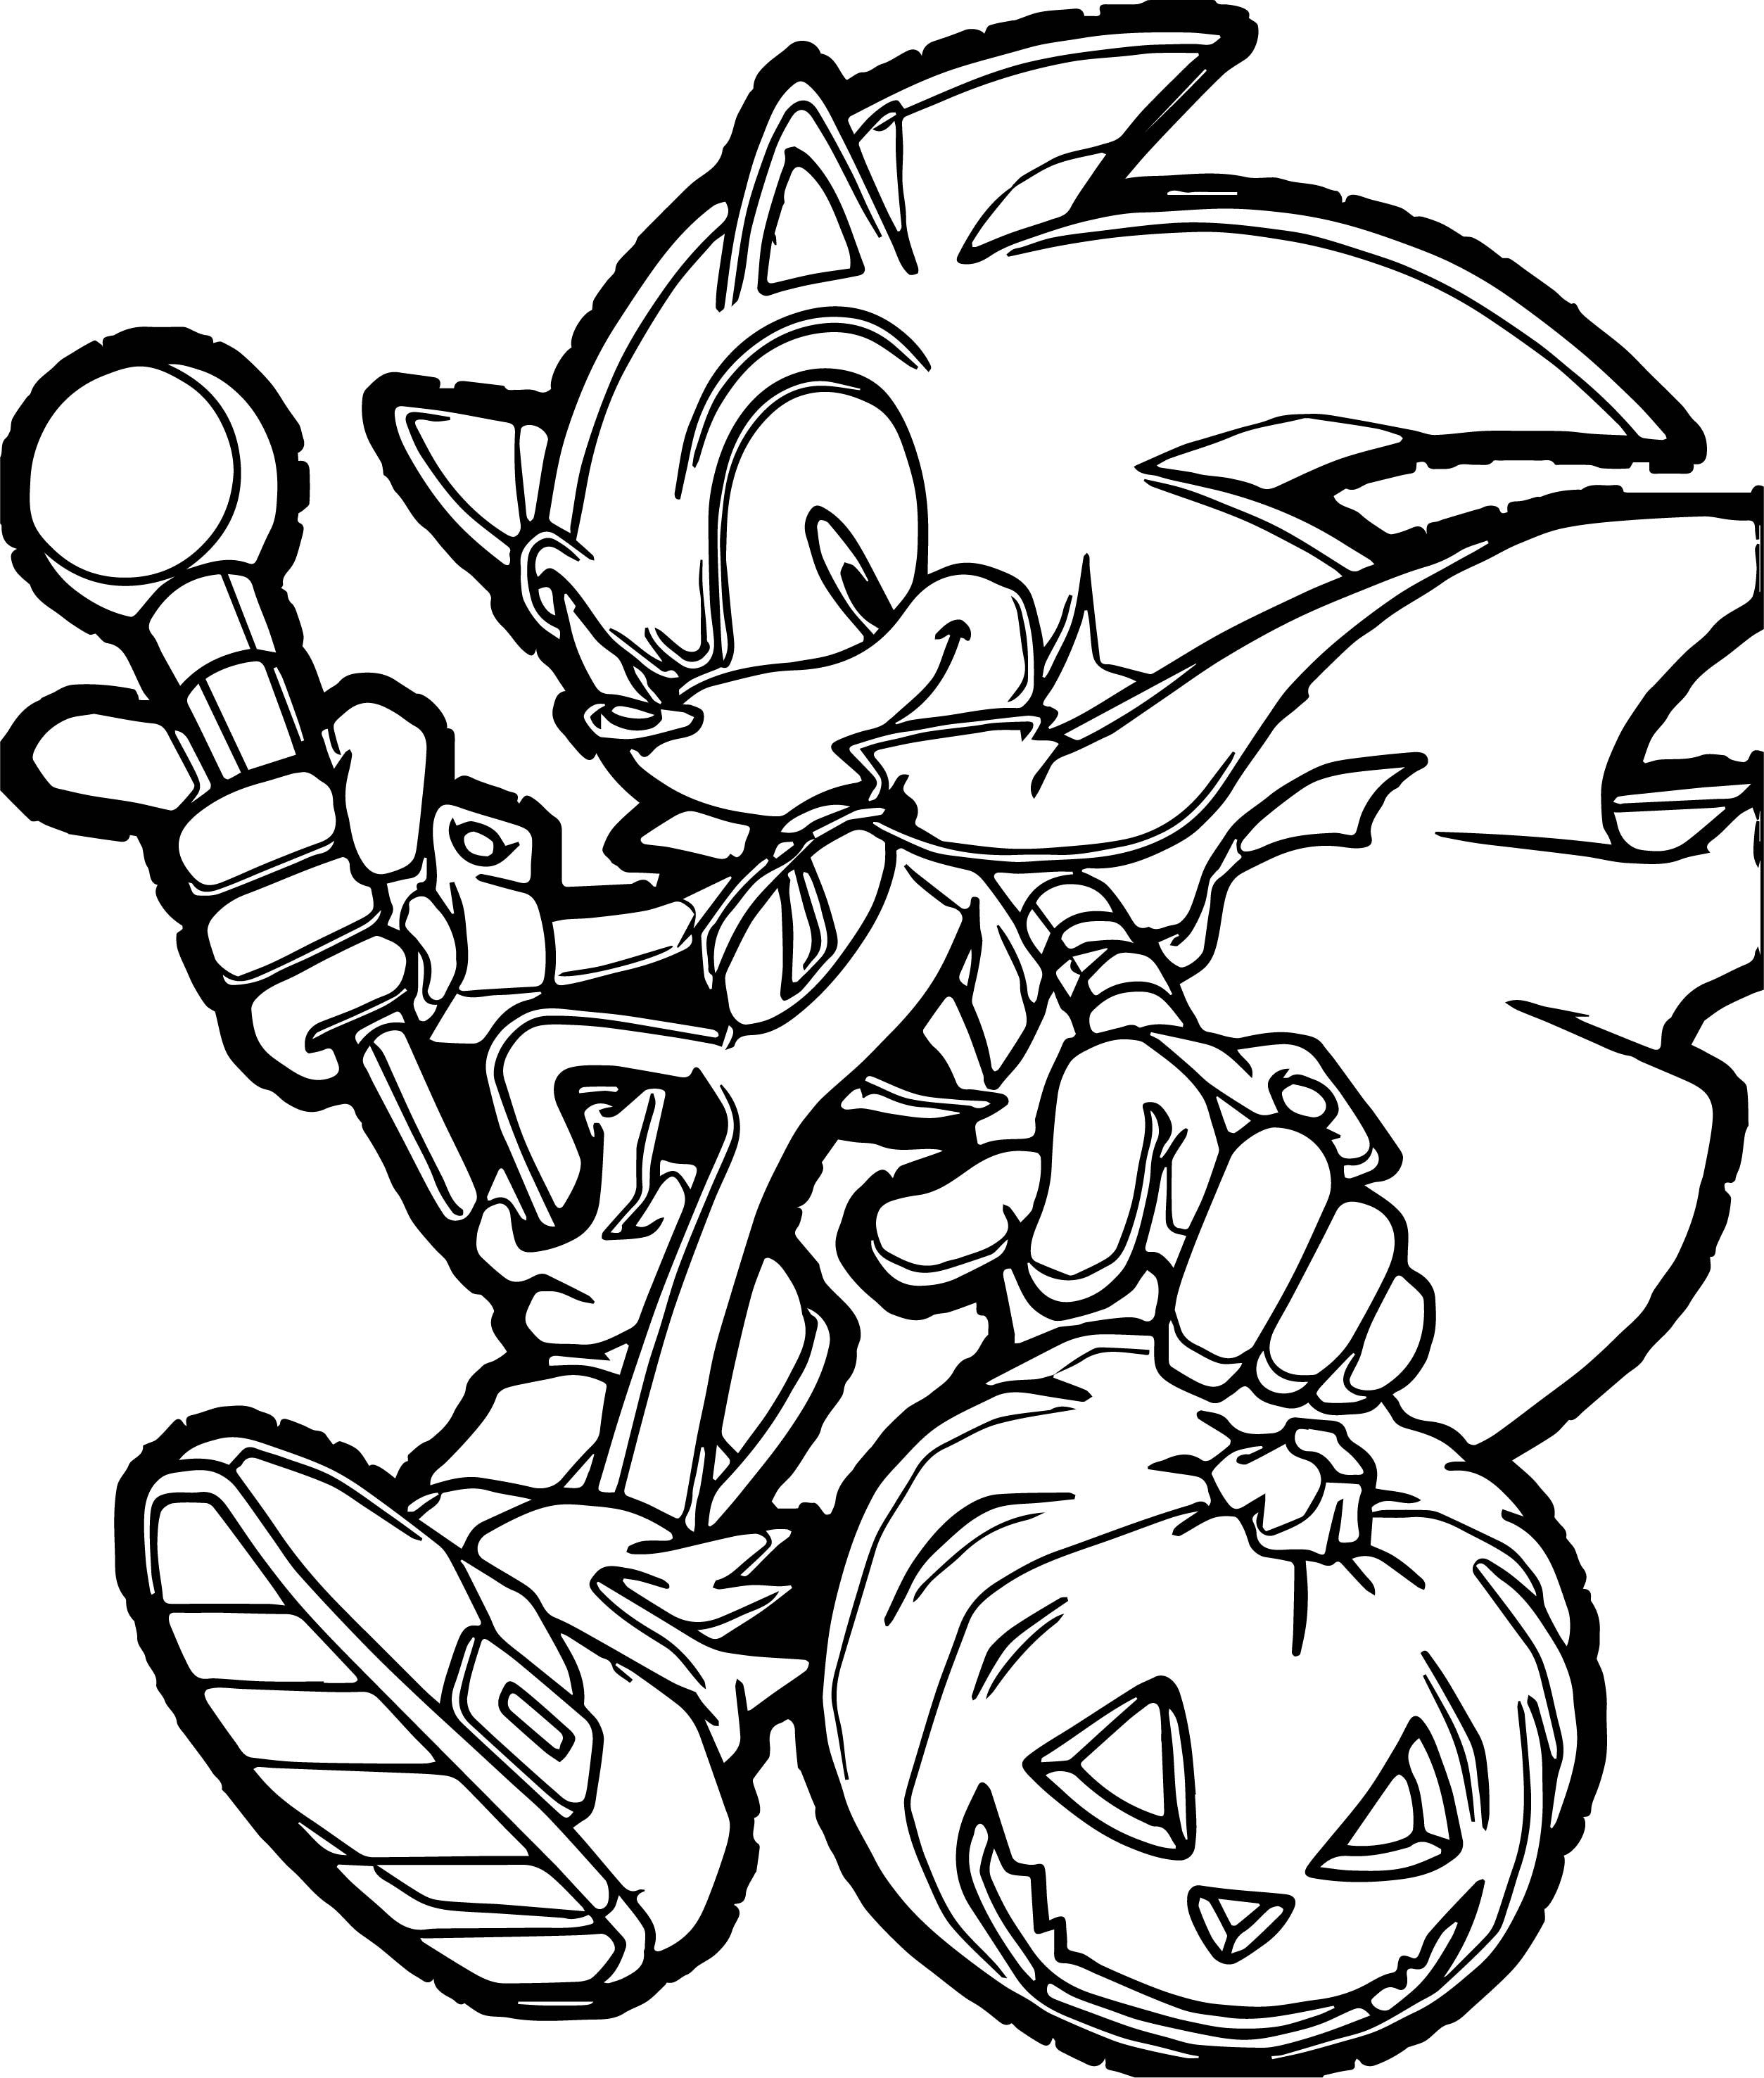 Cool Sonic The Hedgehog Halloween Pumpkin Coloring Page